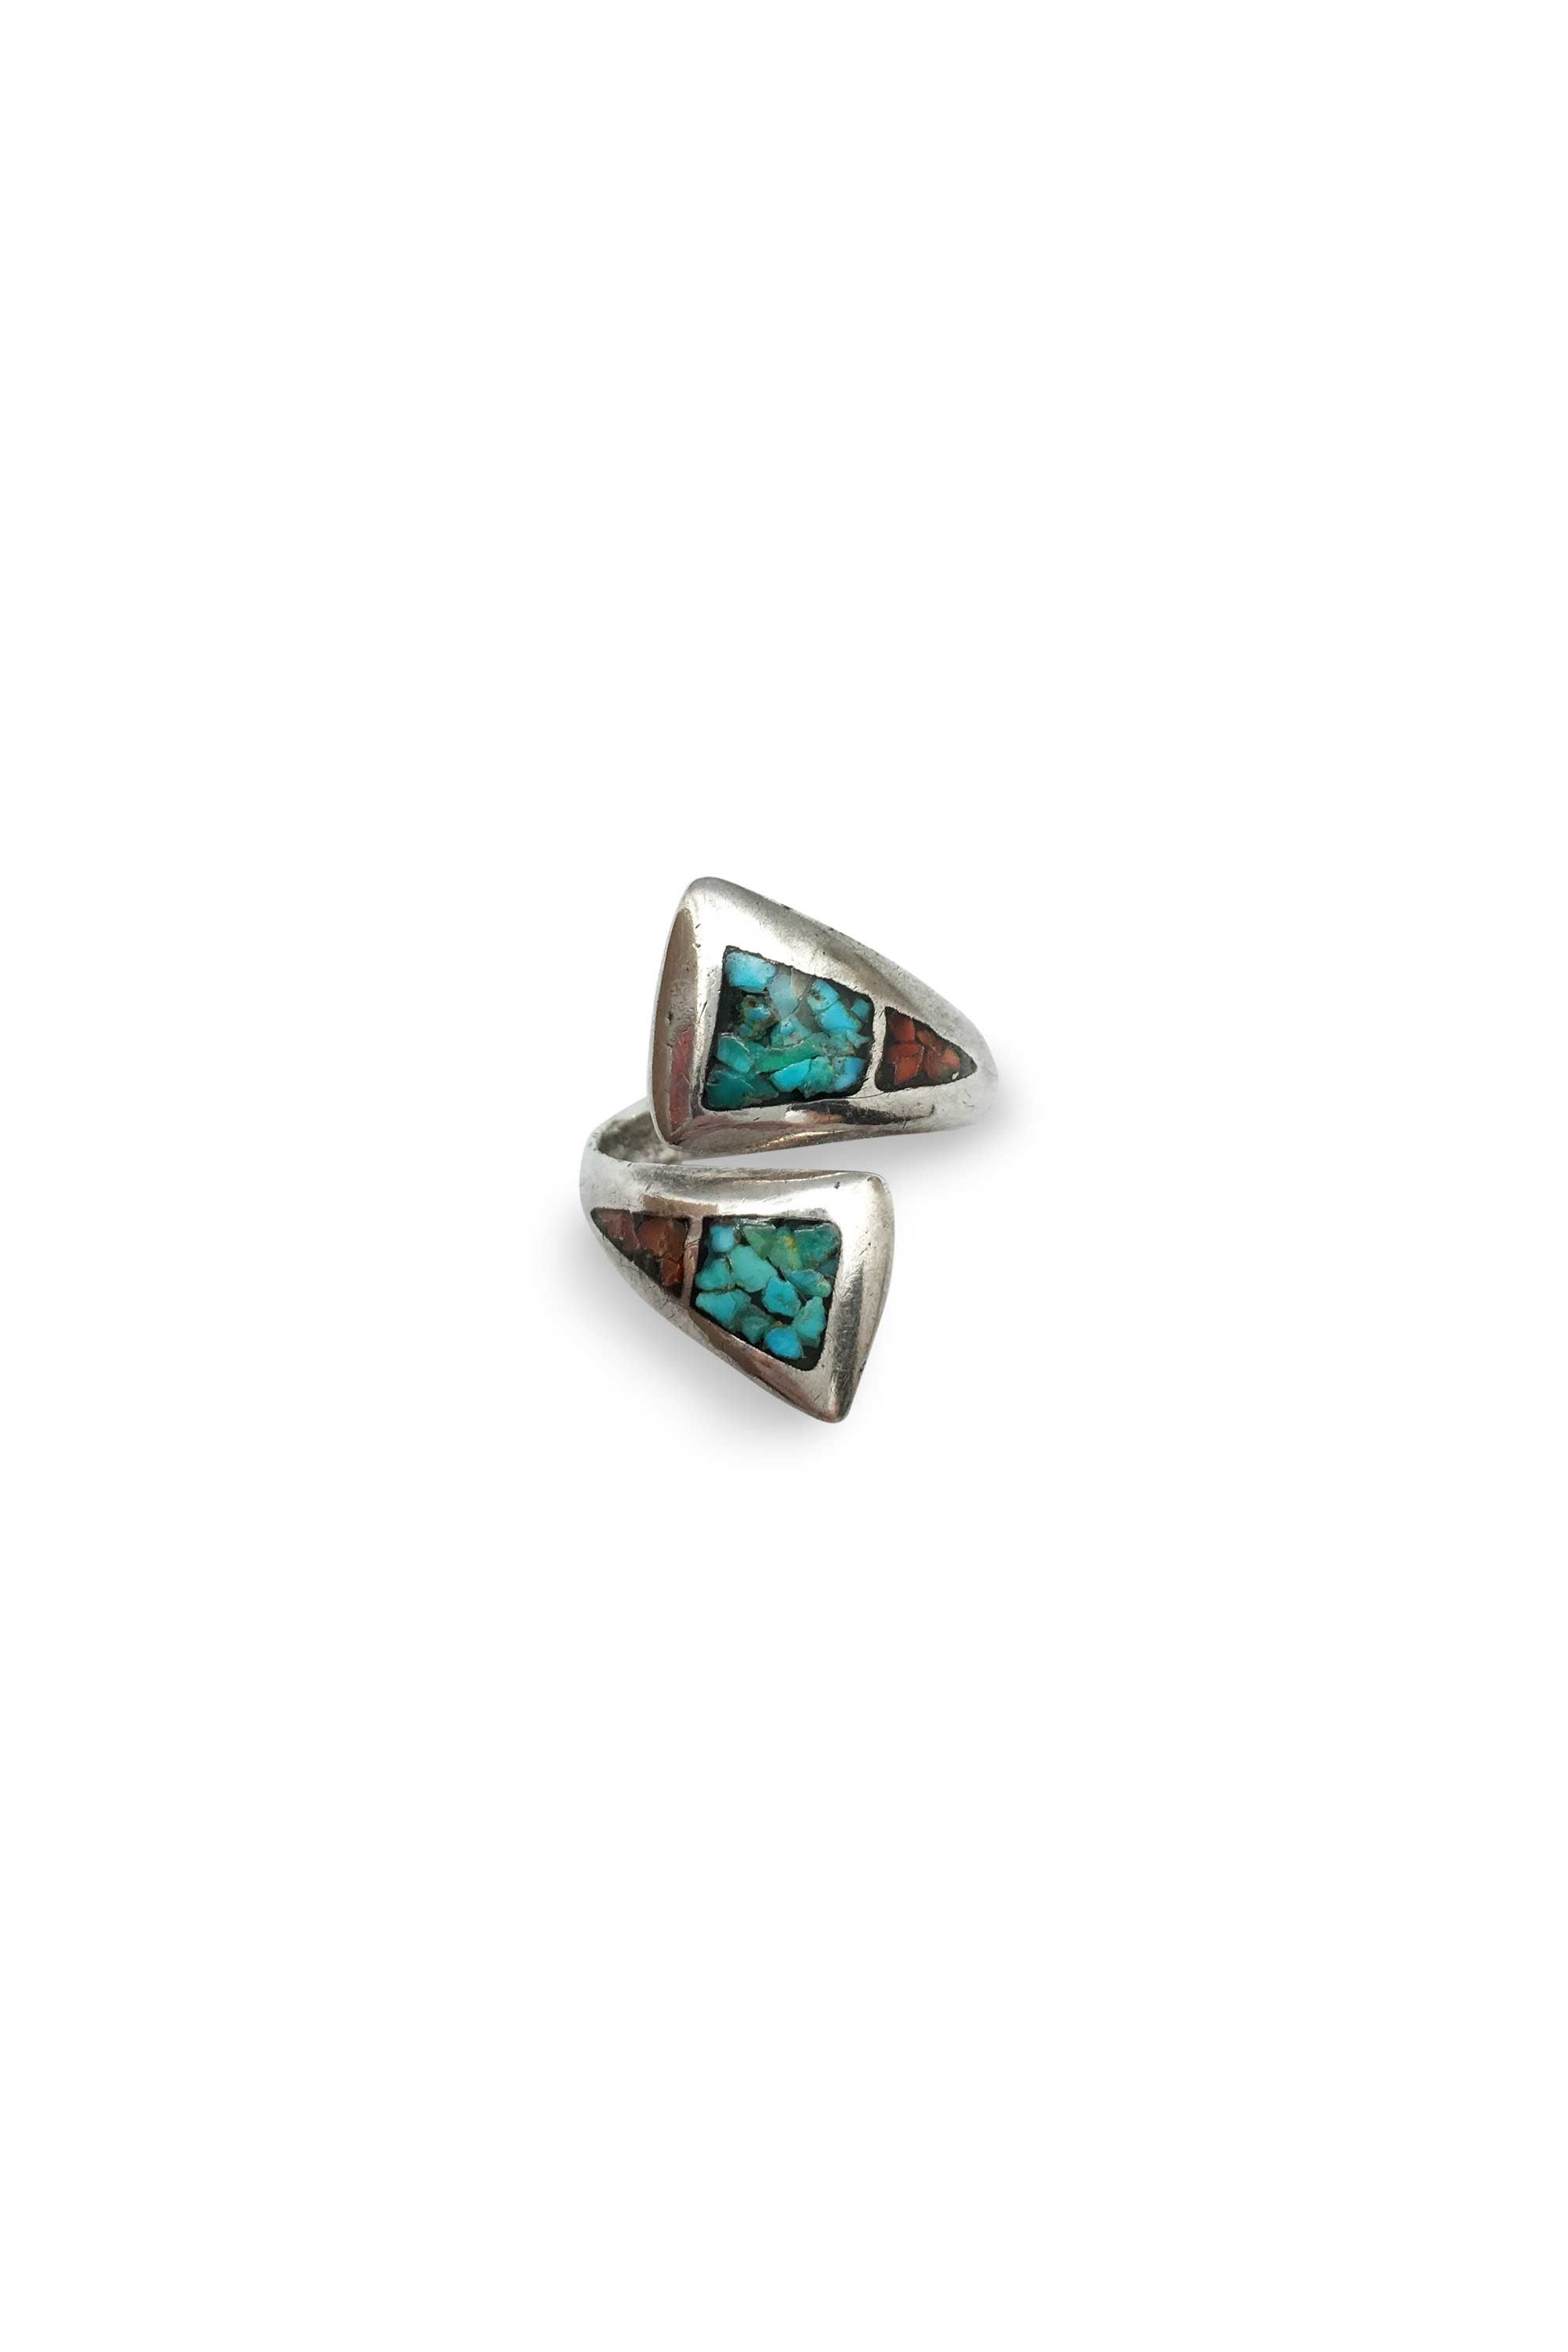 Ring, Inlay, Coral & Turquoise, Vintage, 358